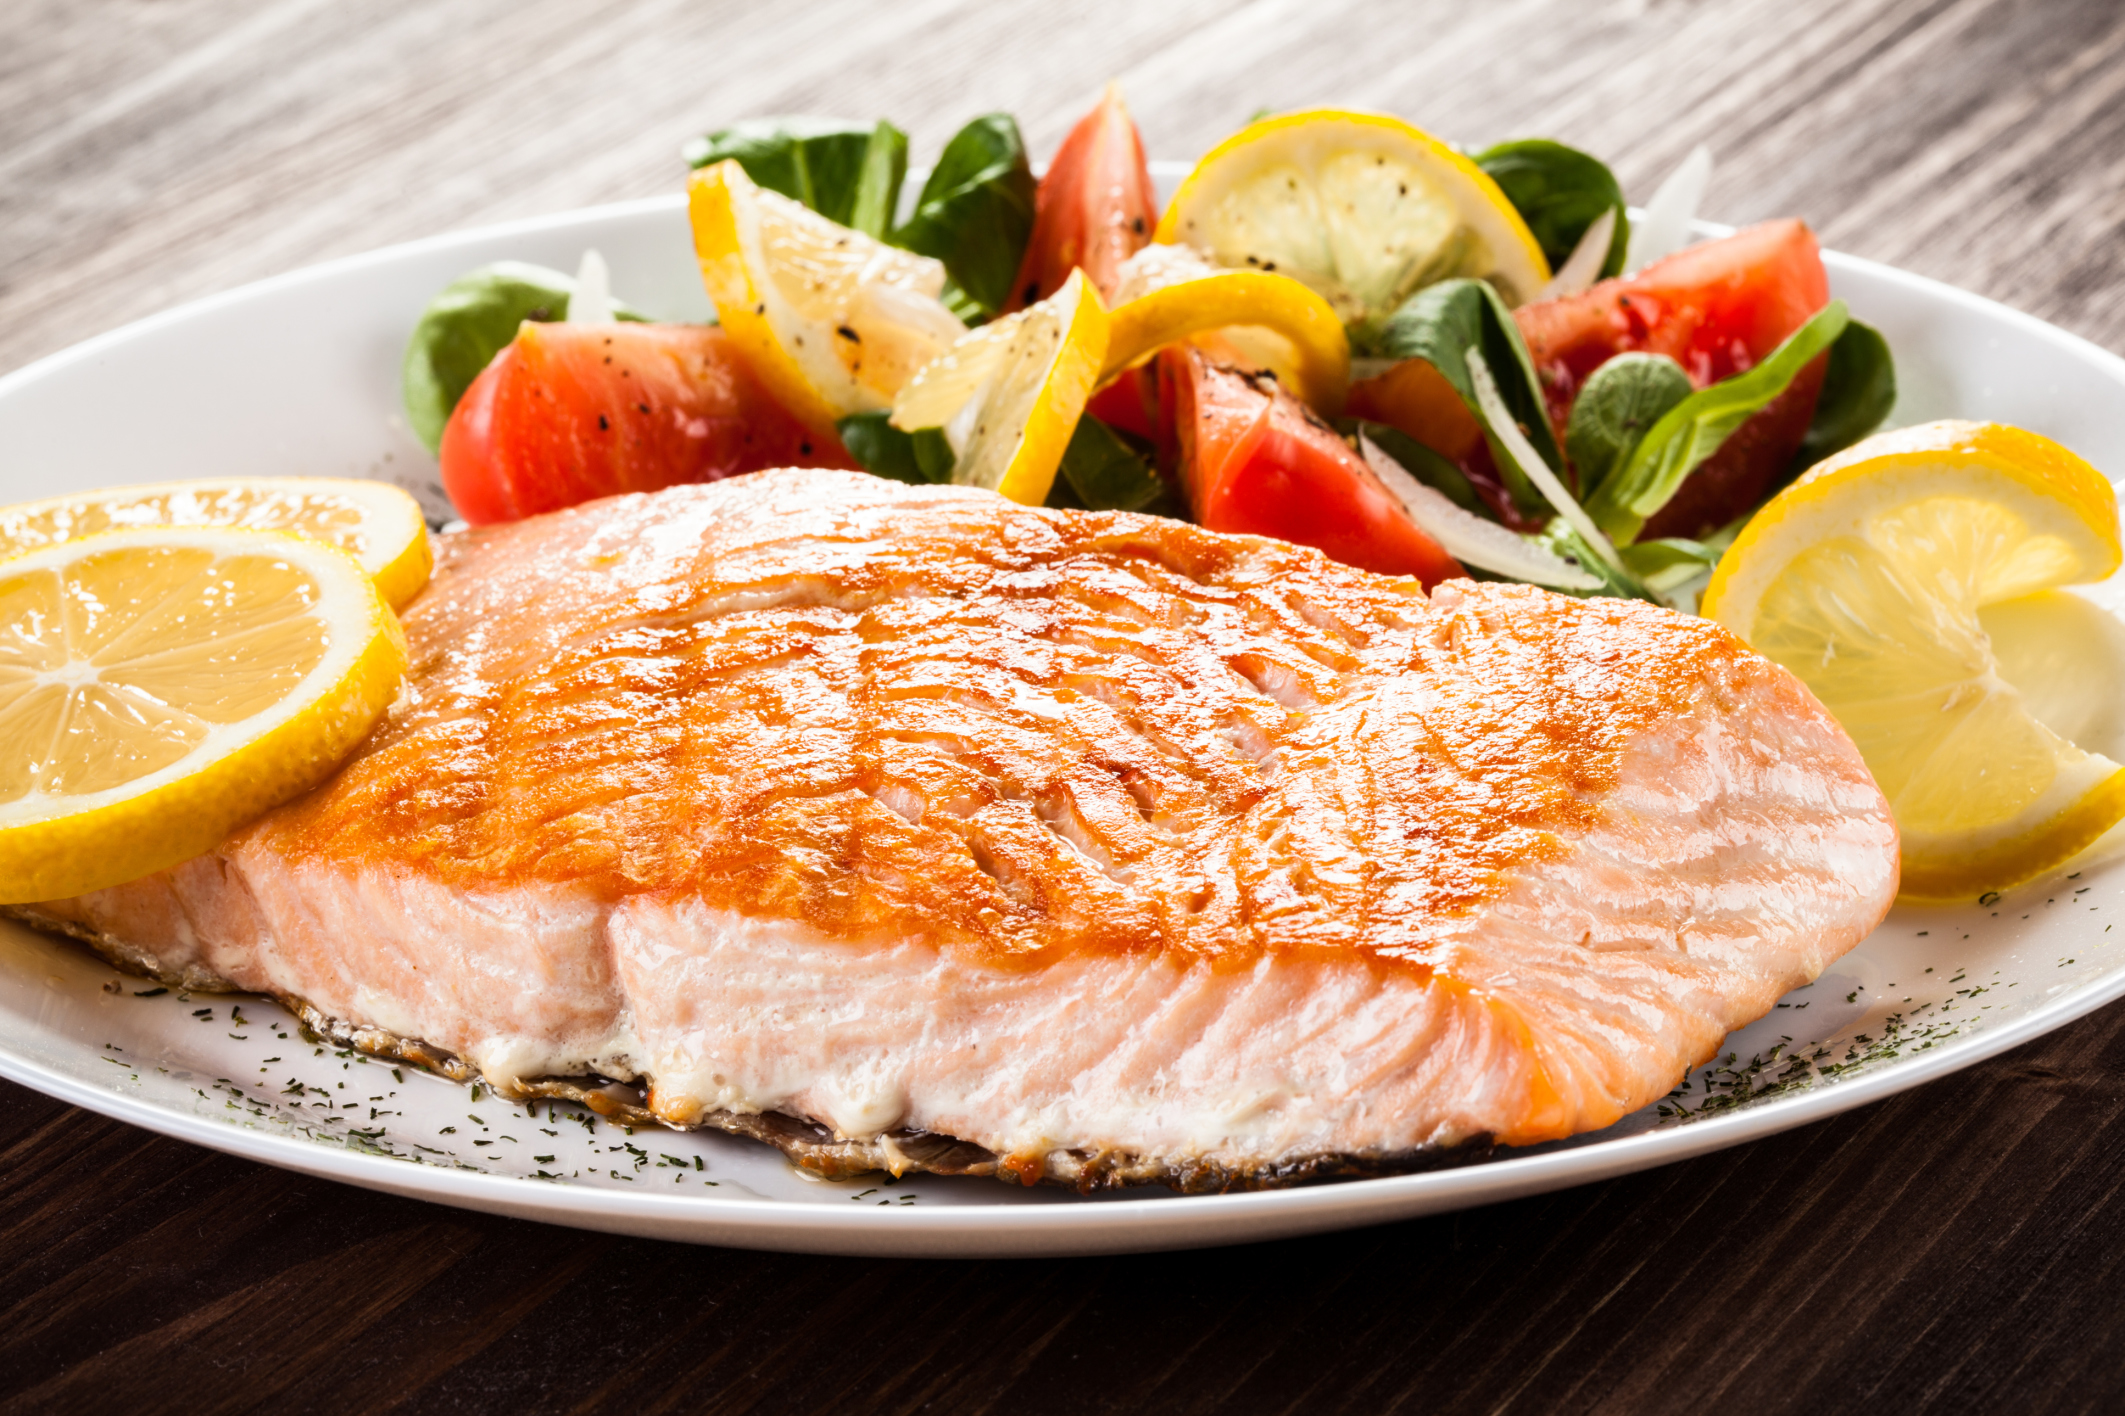 Foods to Avoid With Shingles